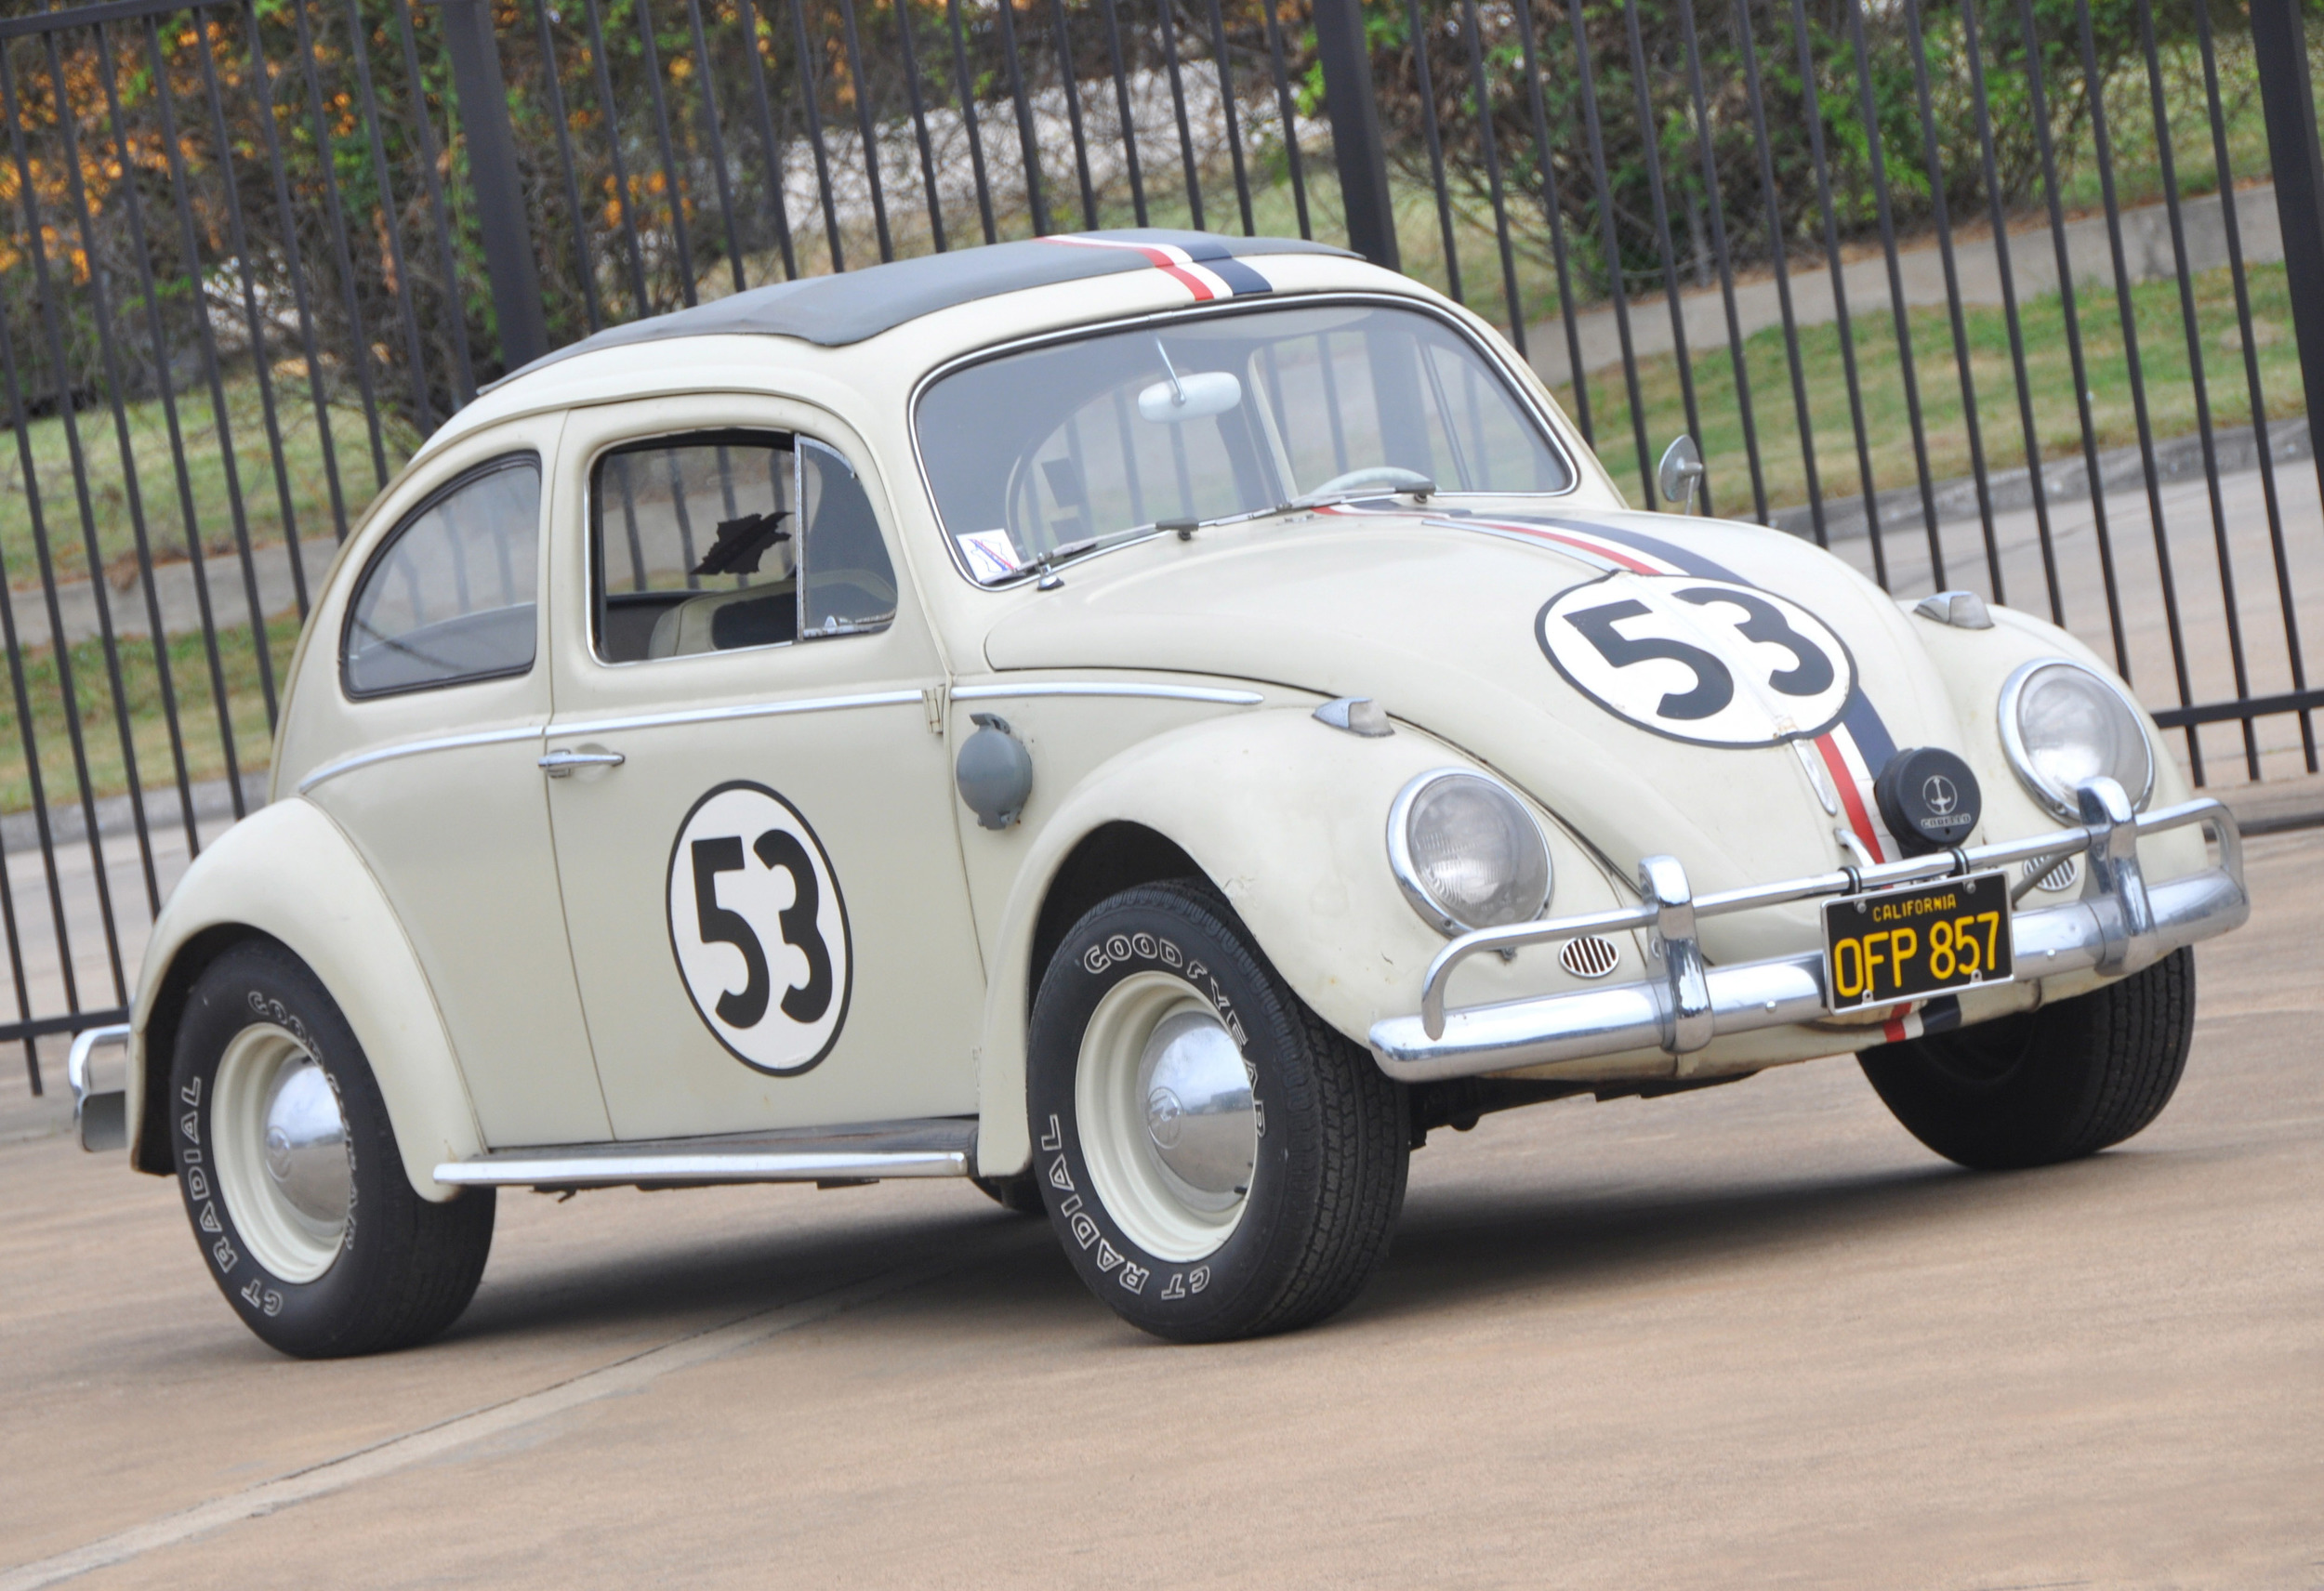 bestride volkswagen microbus awesome beetle his bed a built s news craigslist bunk daughter for dude and this vw its it